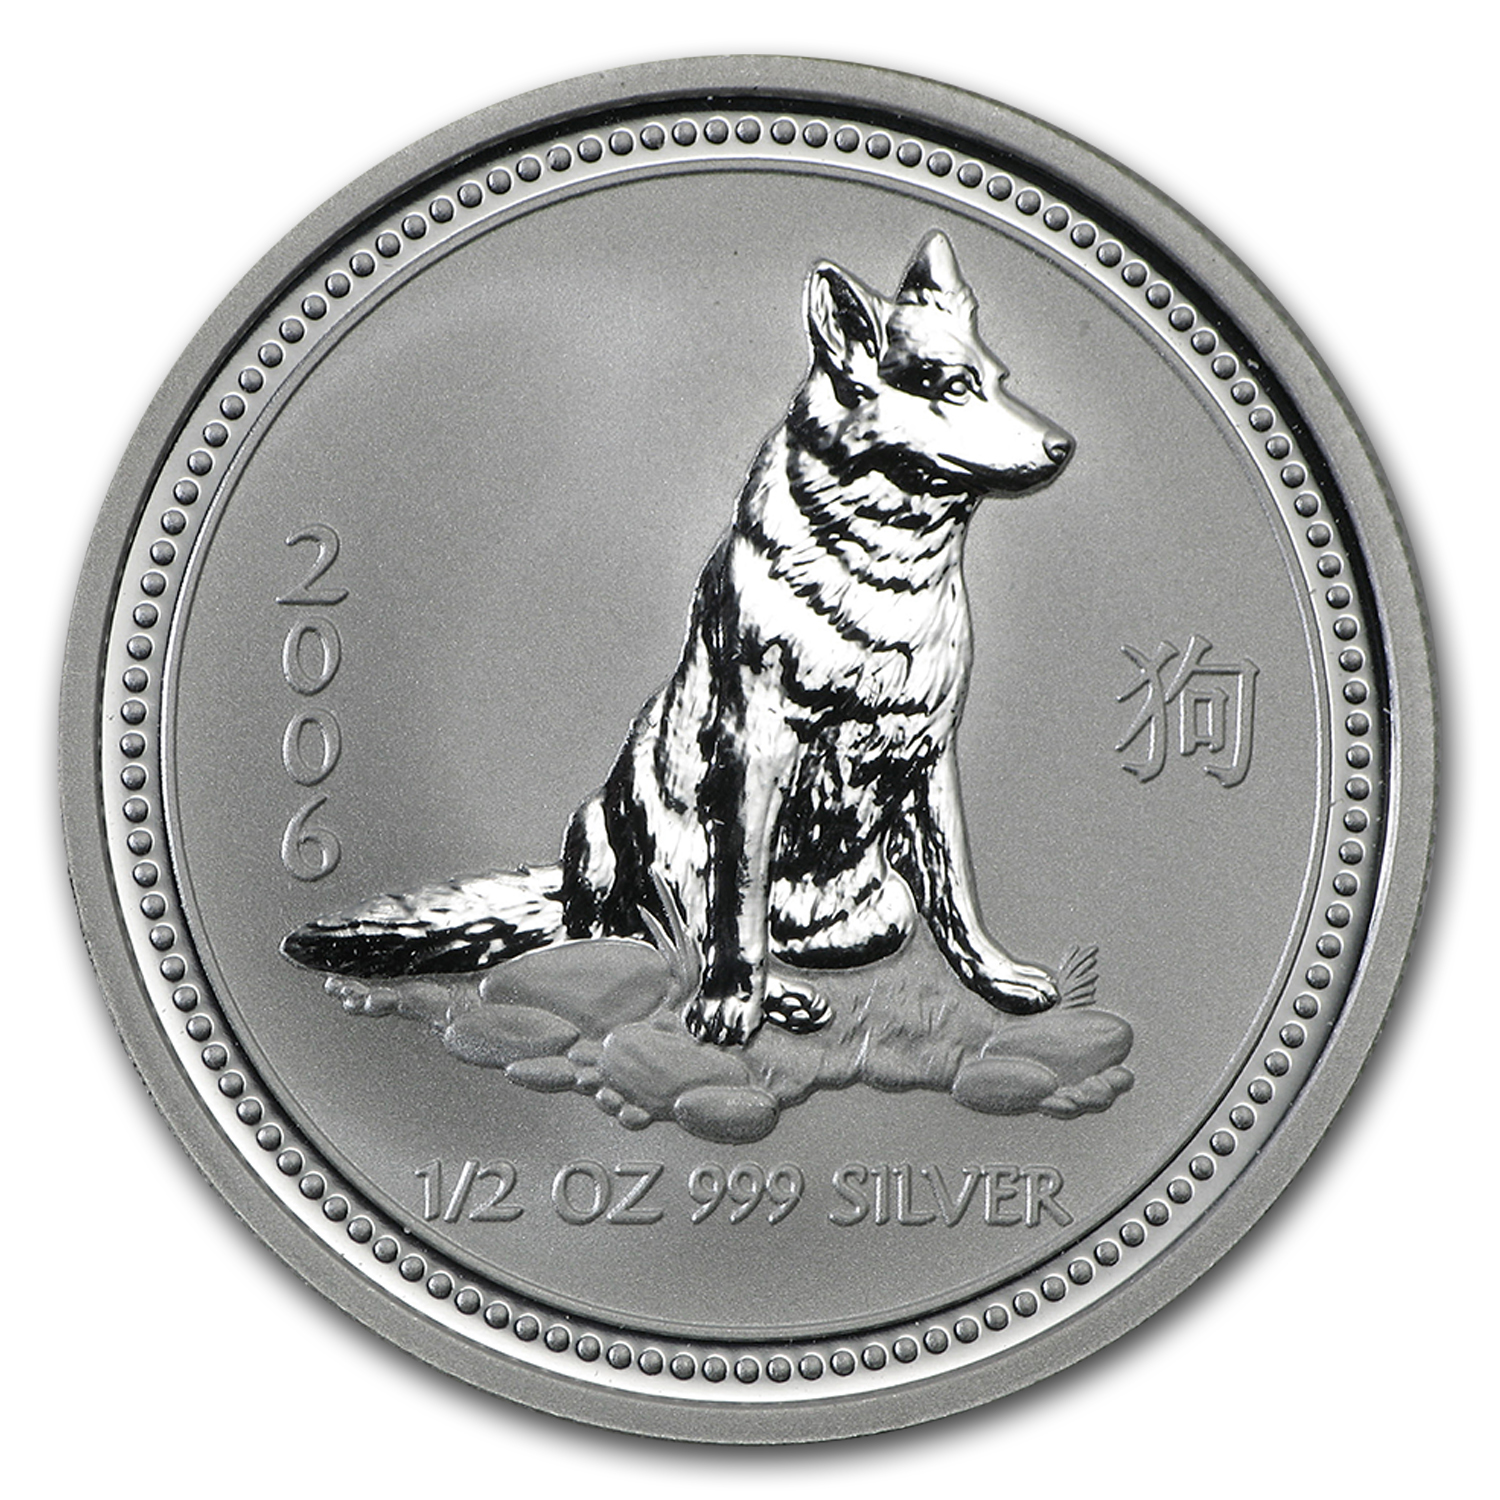 2006 Australia 1/2 oz Silver Year of the Dog BU